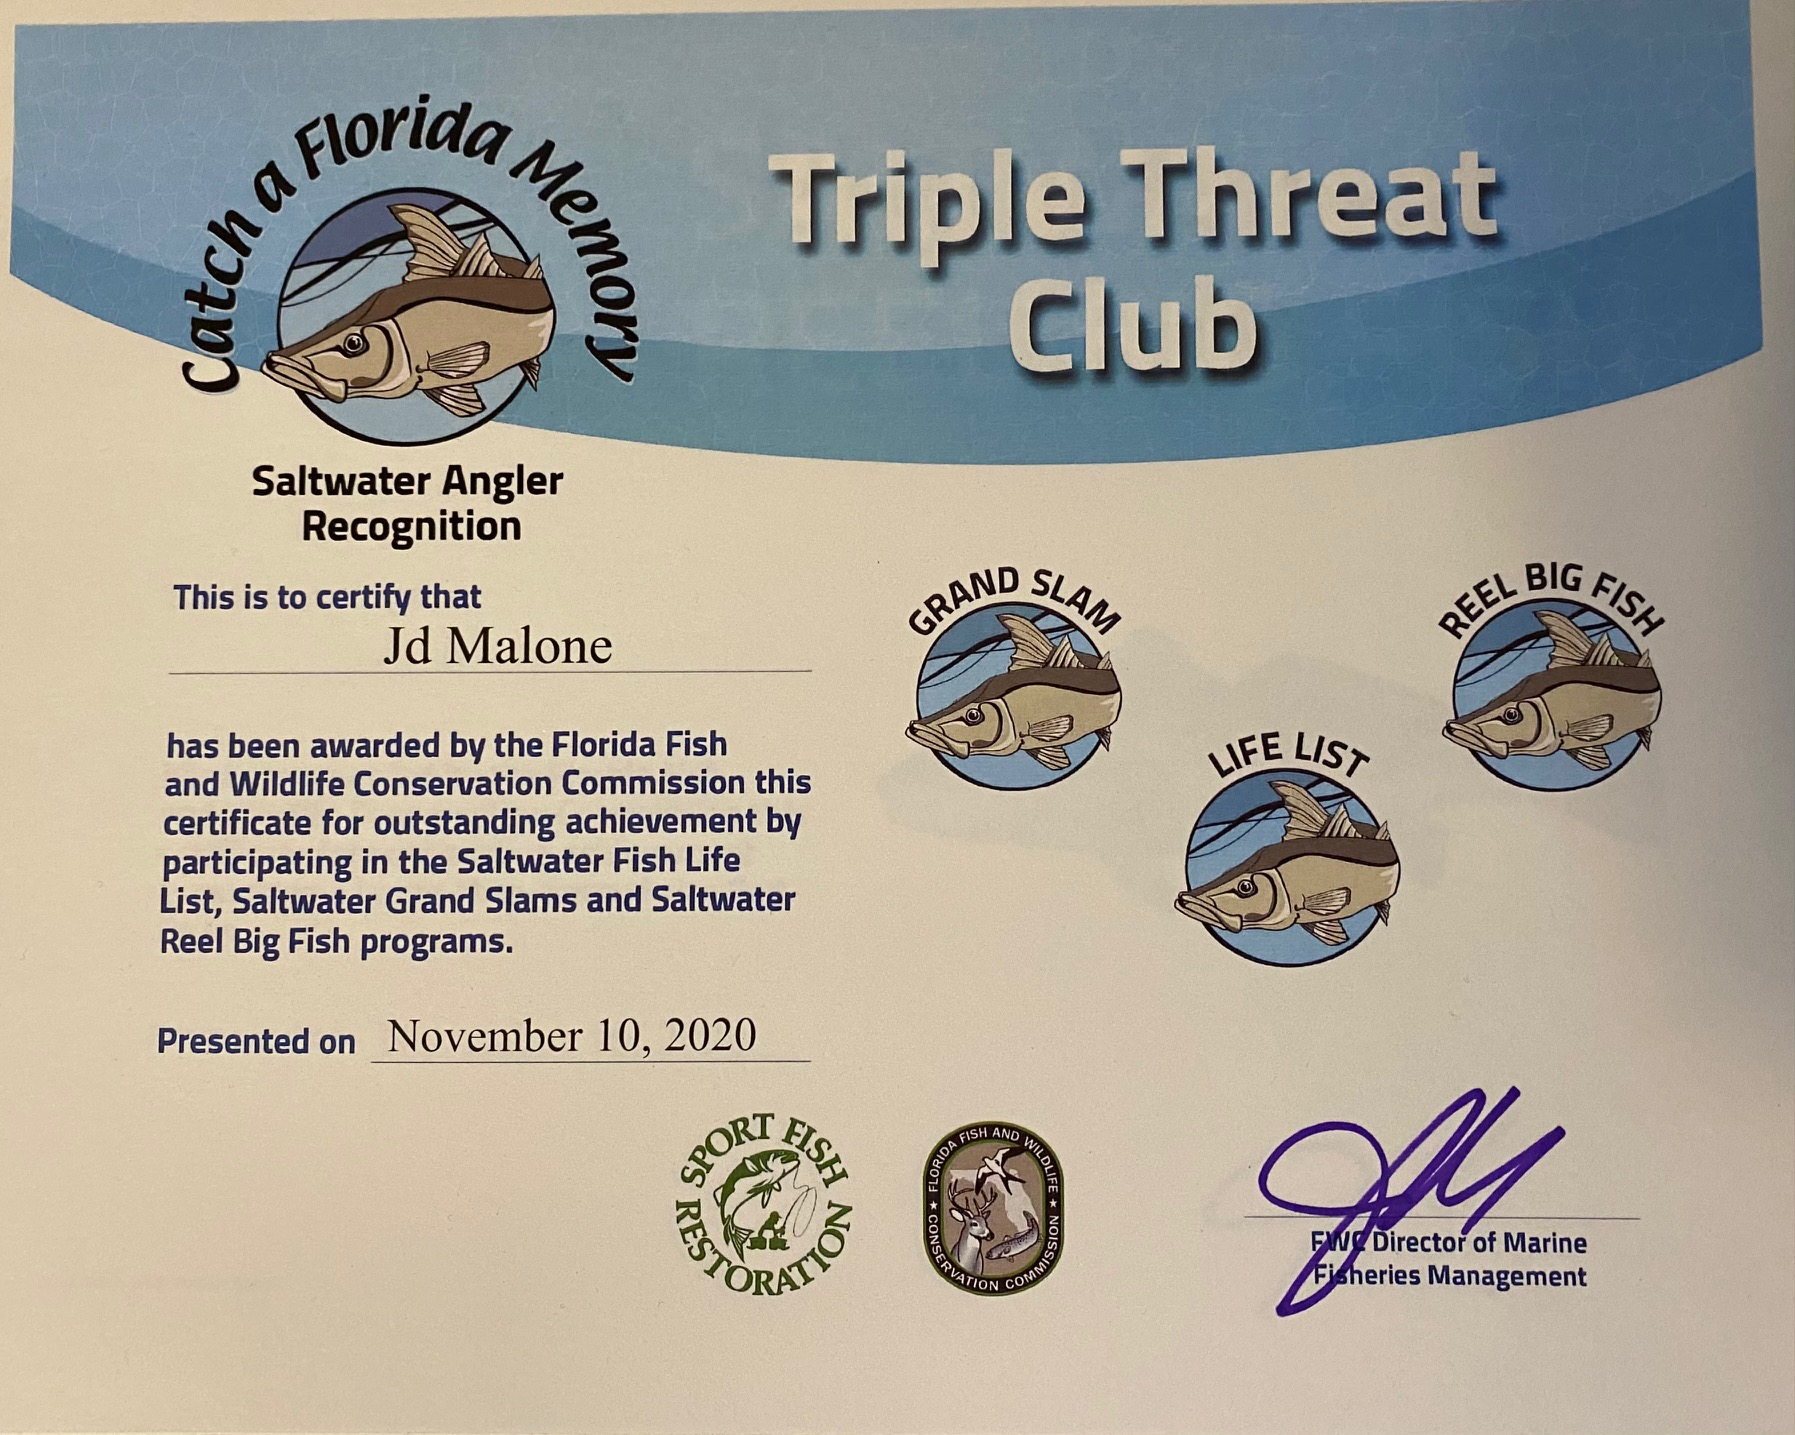 Triple Threat Club certificate from FWC Angler Recognition Program